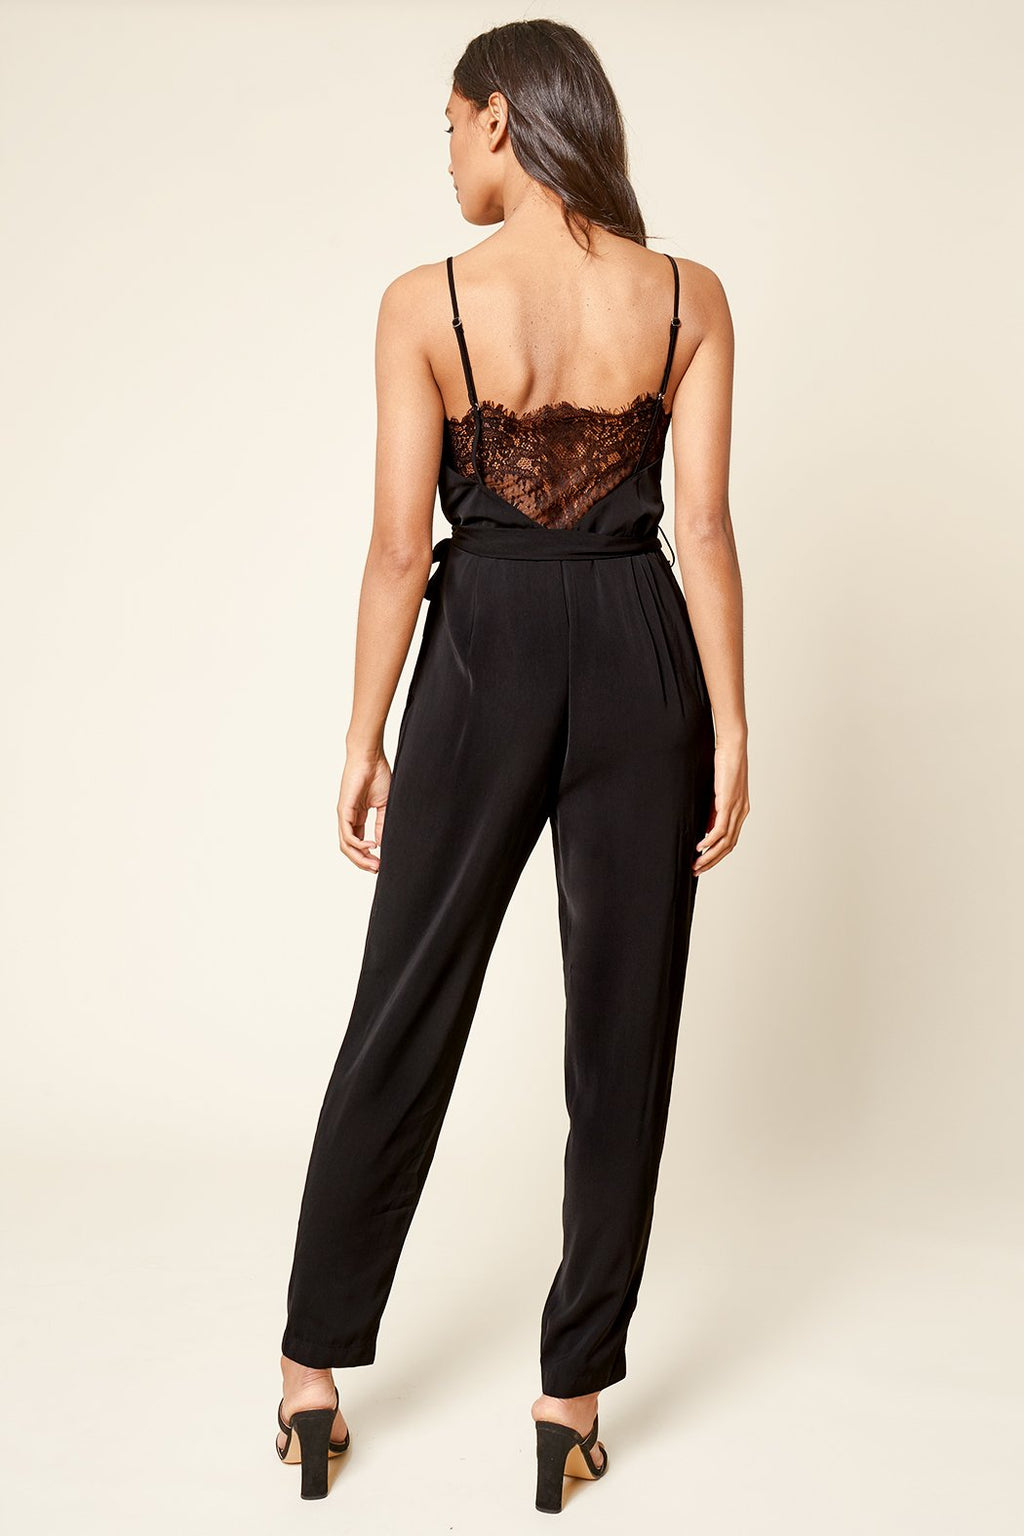 One I Adore Belted Back Lace Jumpsuit